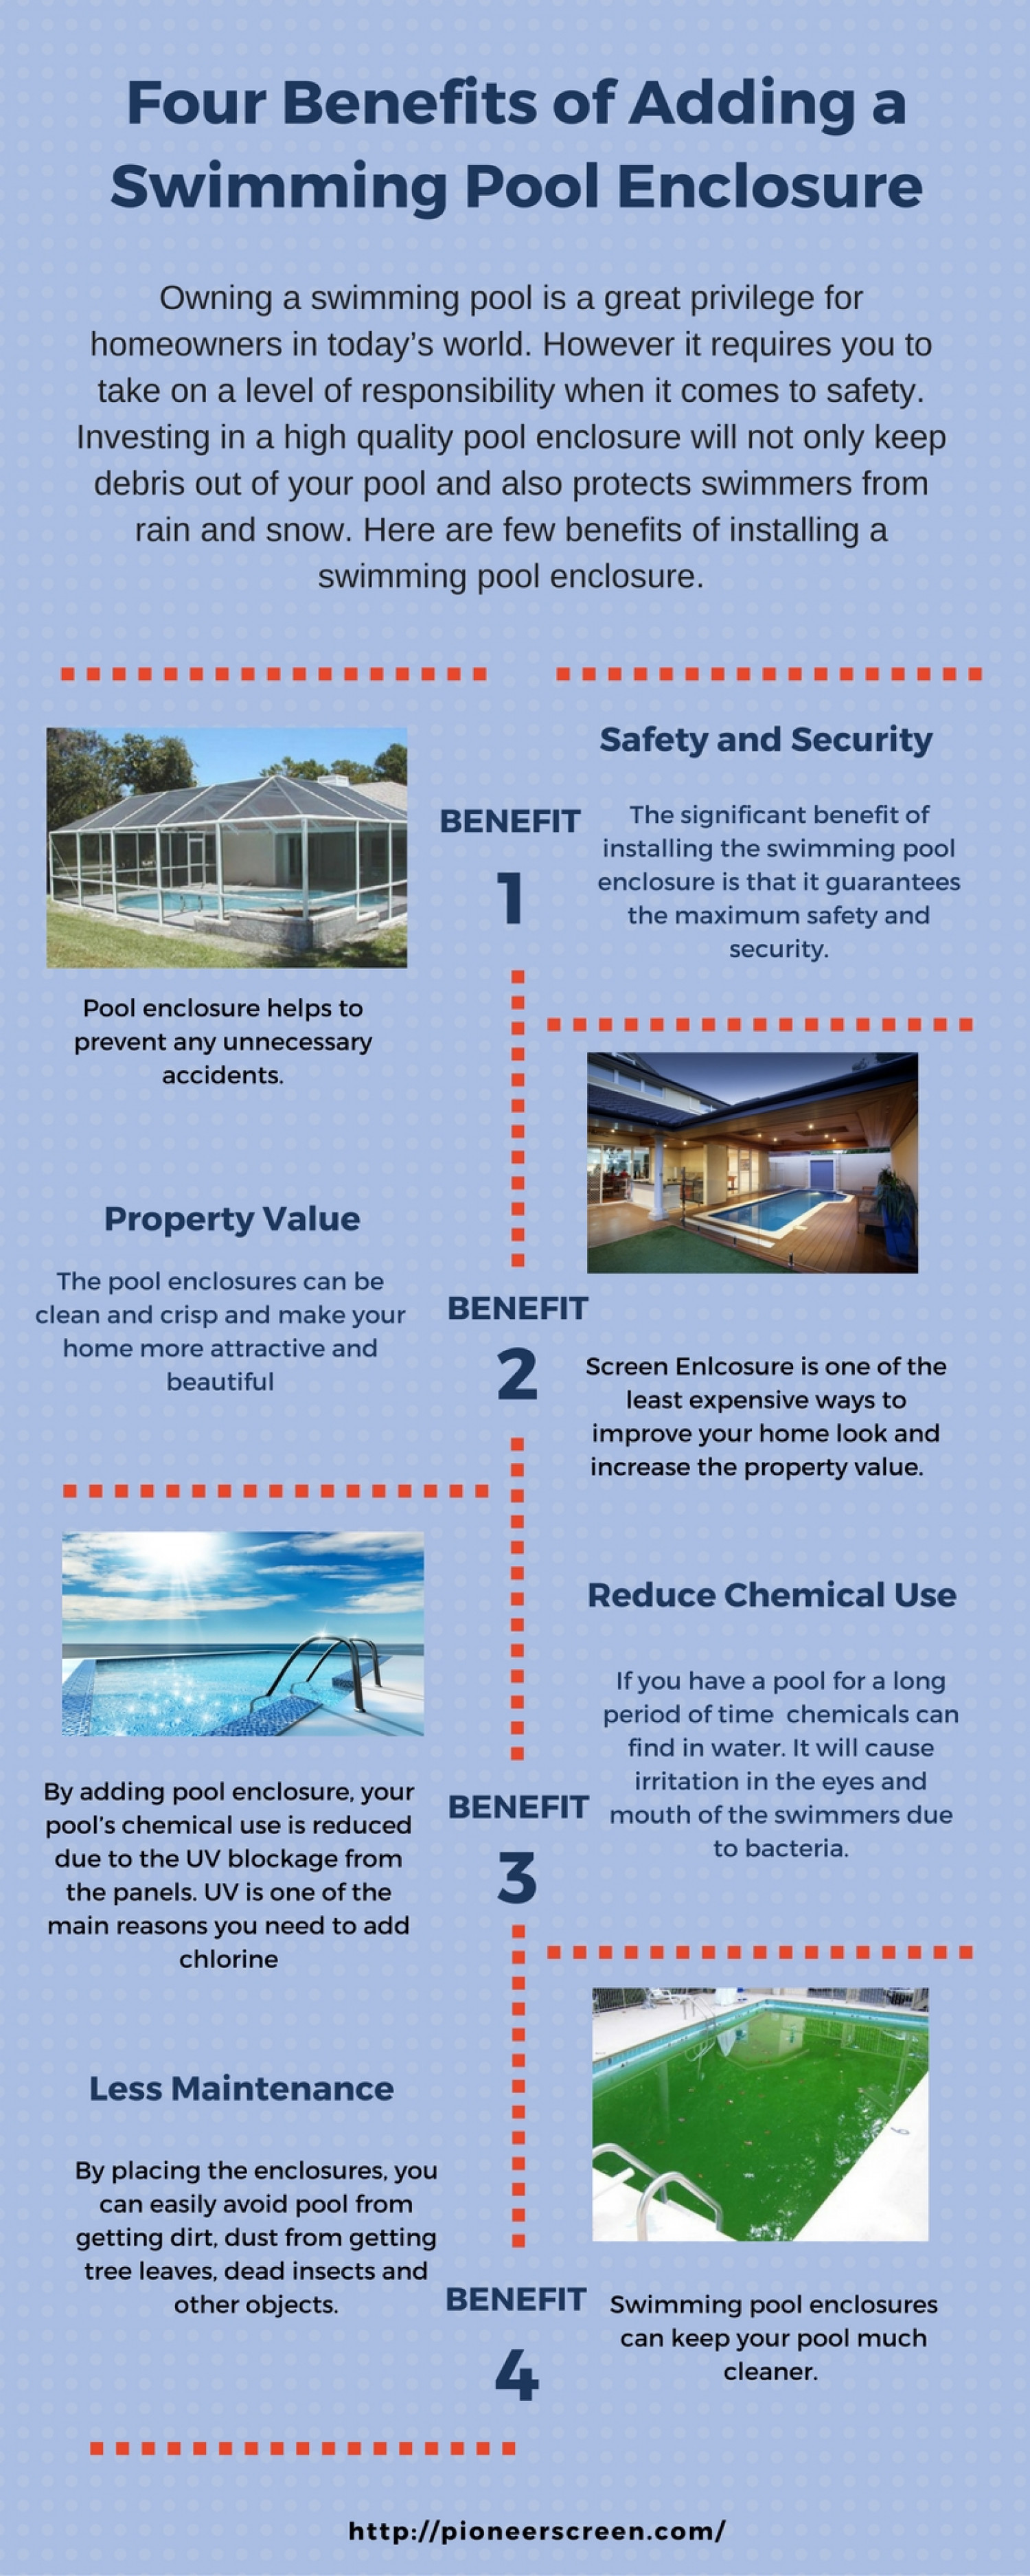 Four Benefits of Adding a Swimming Pool Enclosure